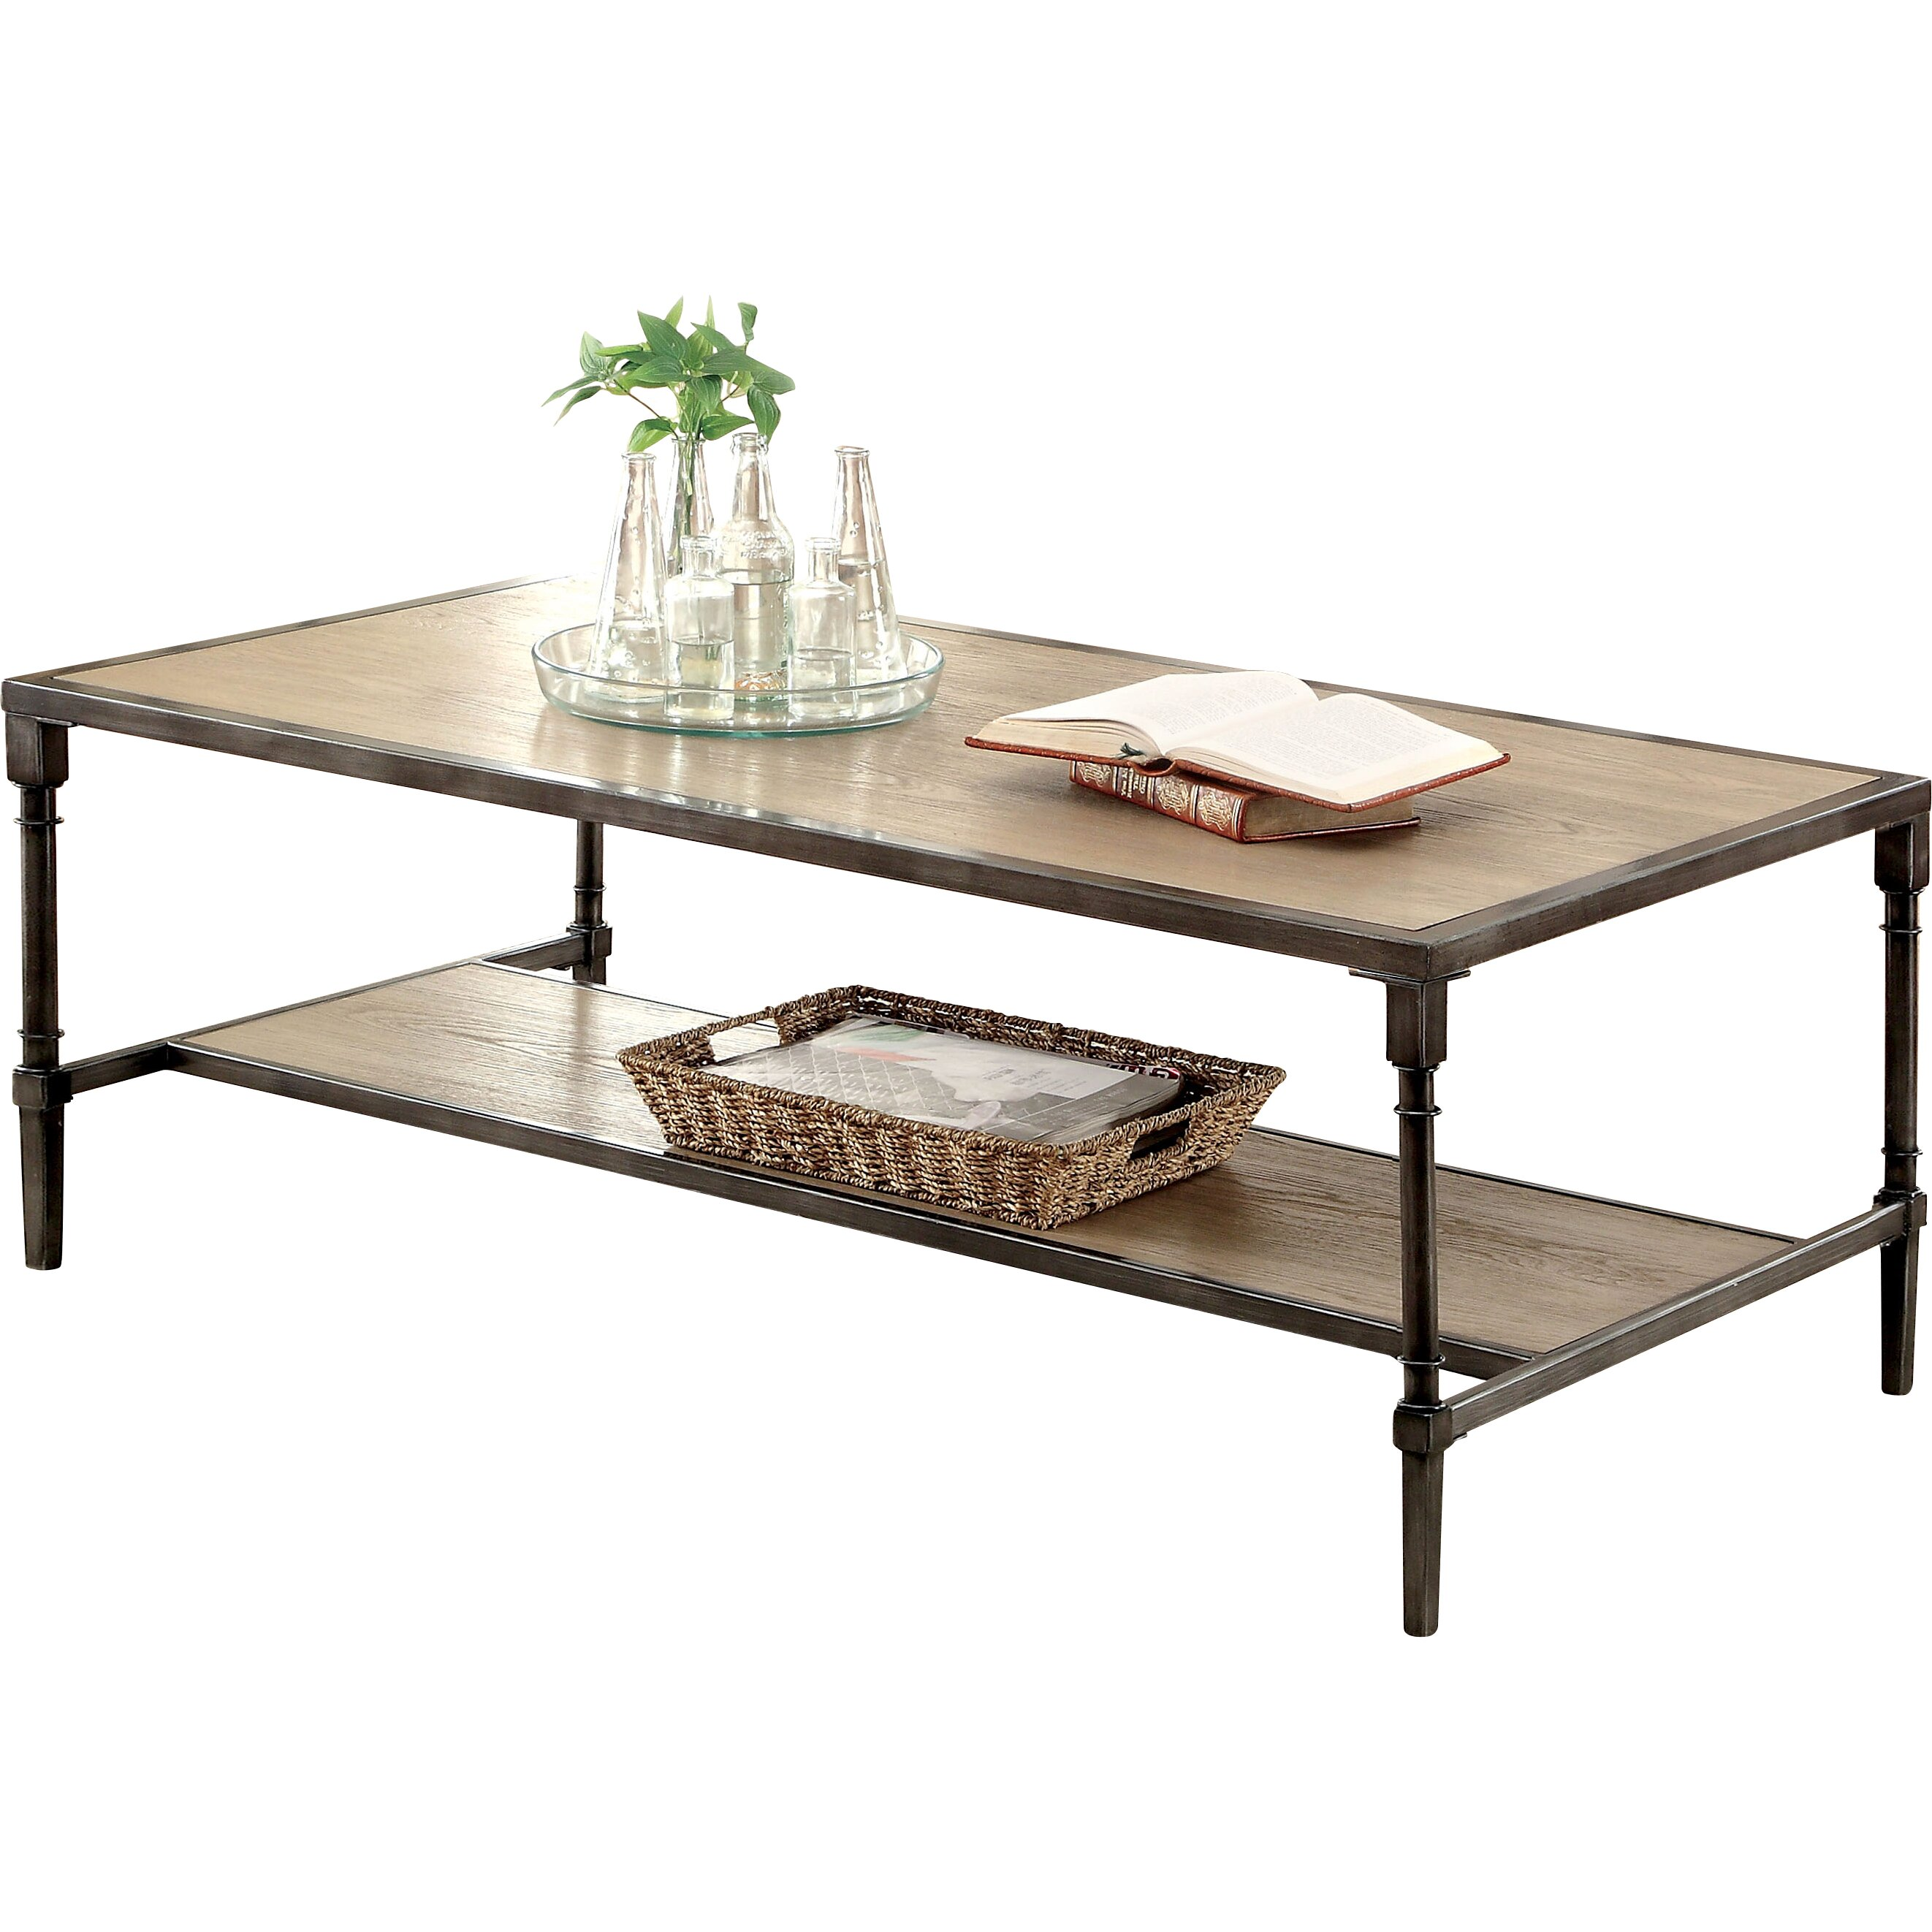 Laurel foundry modern farmhouse forrest coffee table for Modern farmhouse coffee table